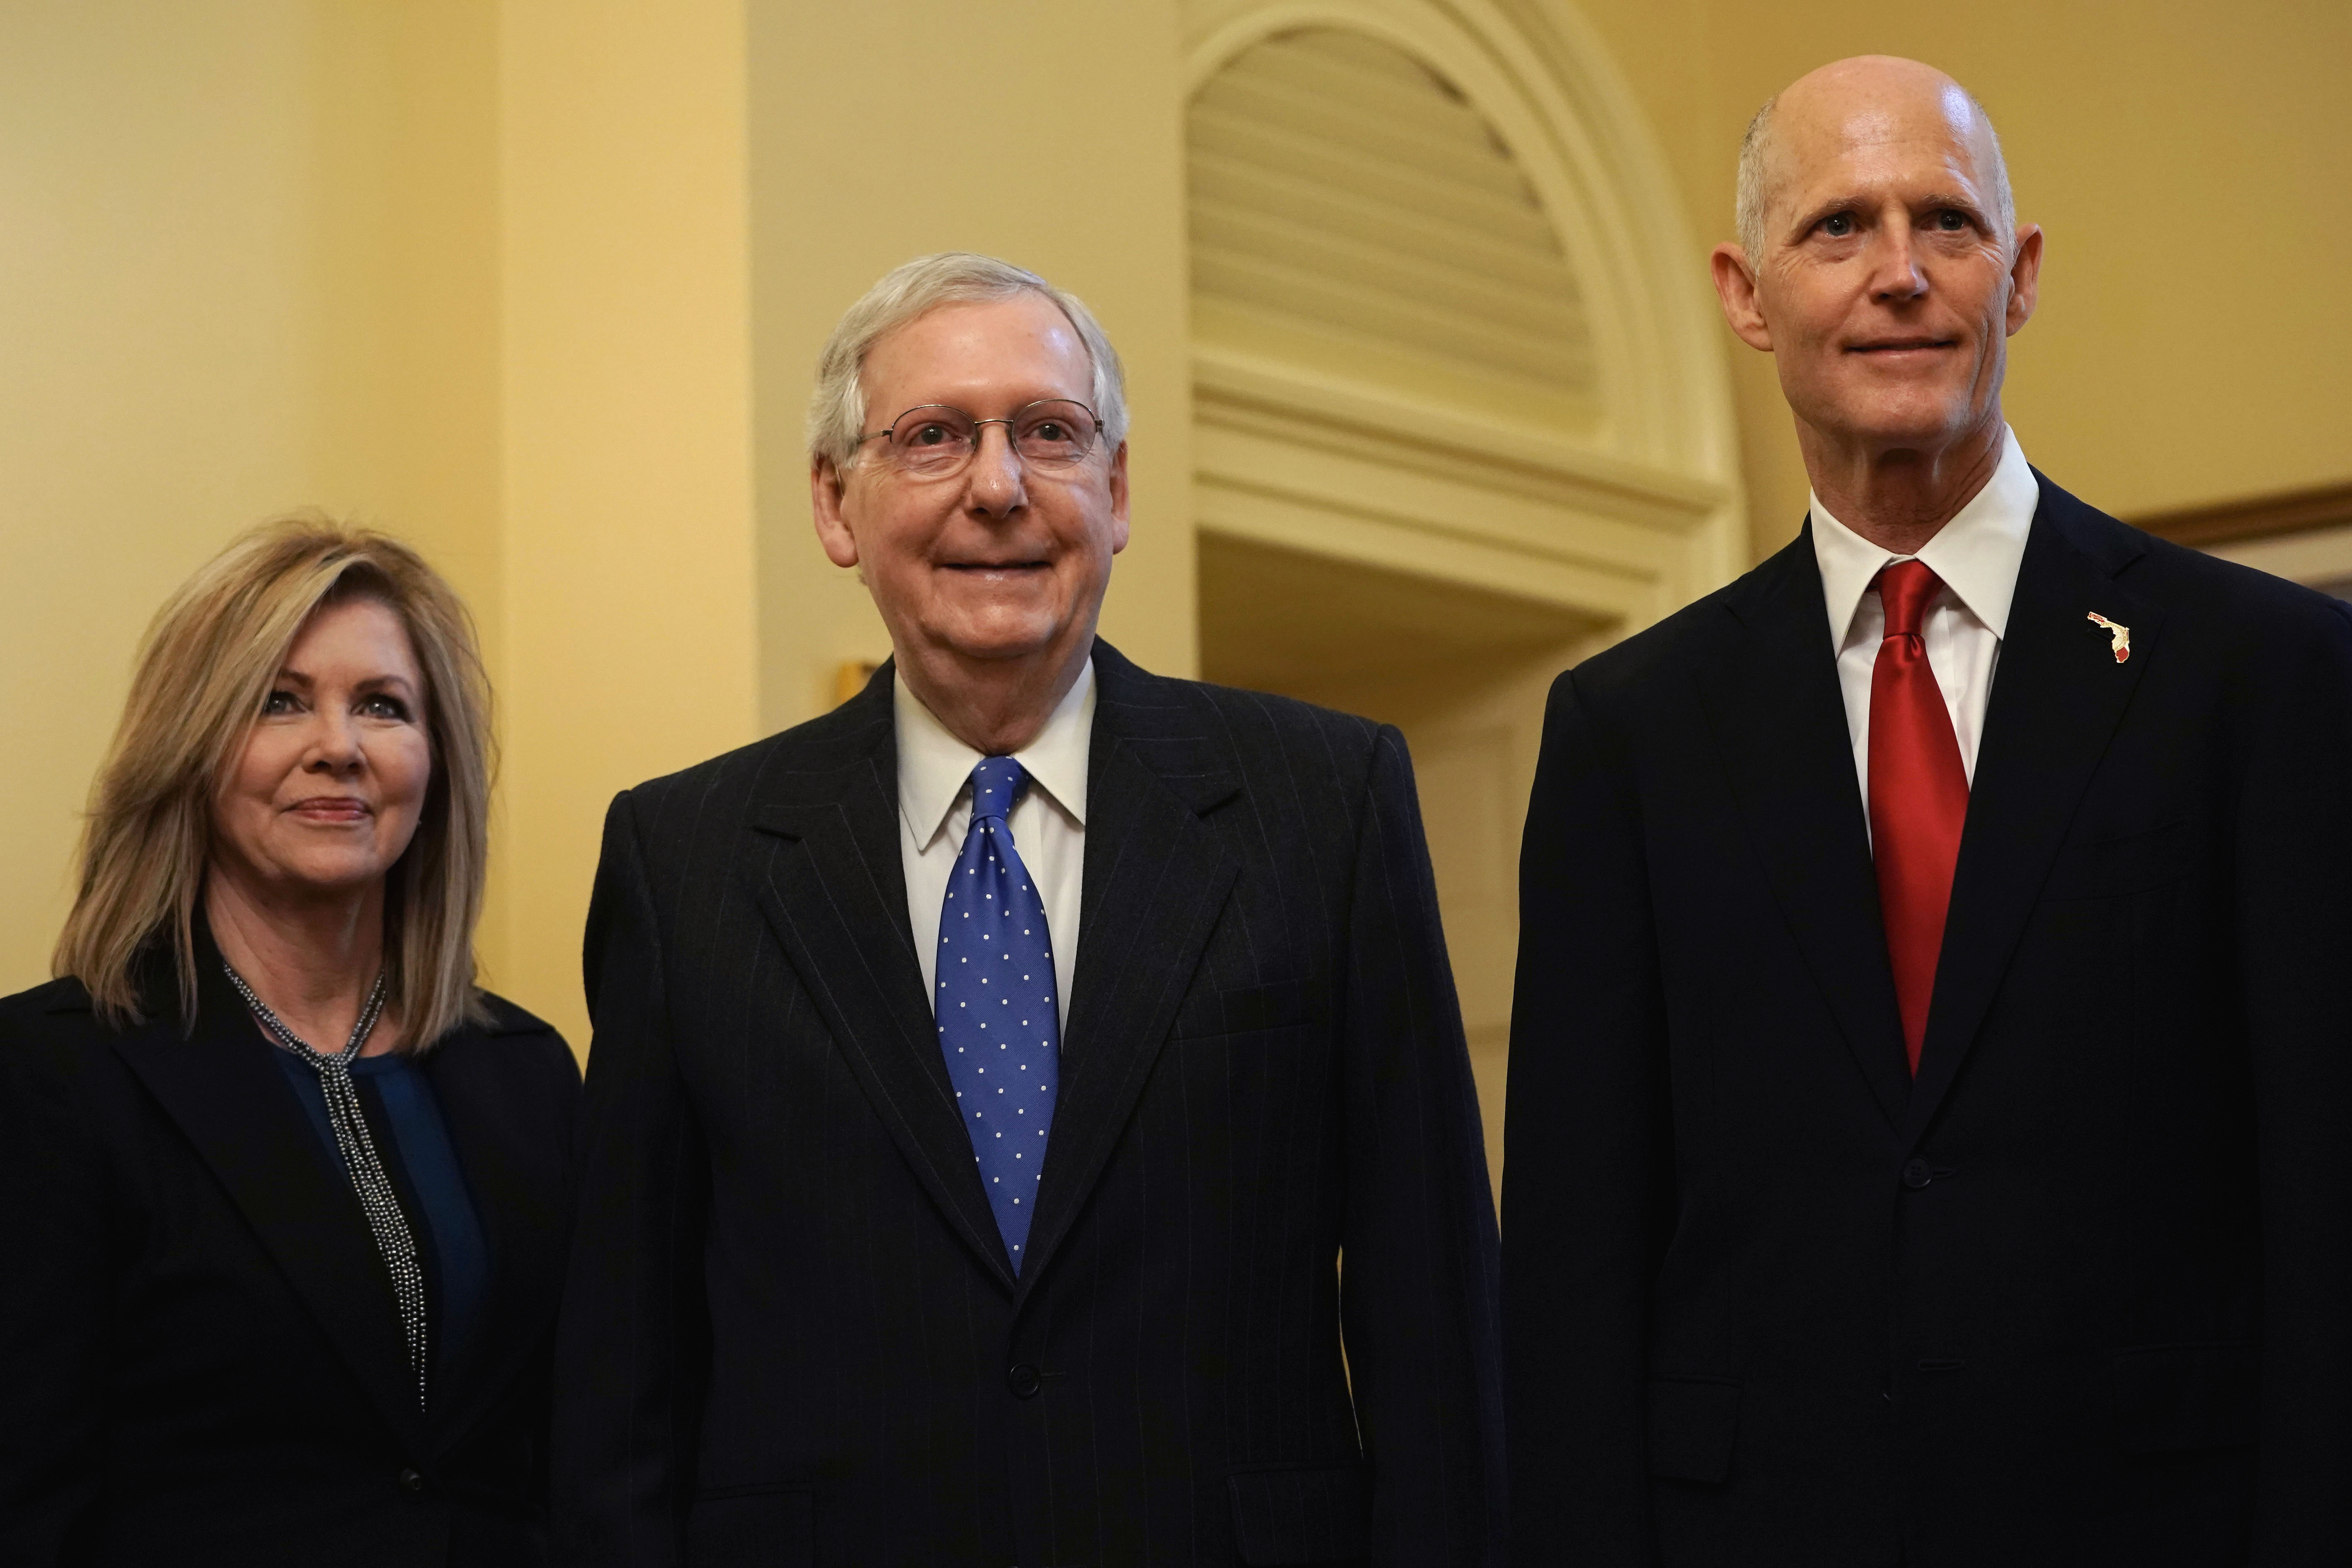 U.S. Senate Majority Leader Sen. Mitch McConnell (C) poses for photos with Republican Tennessee Senator-elect Marsha Blackburn (L) and Republican U.S. Senate candidate for Florida and incumbent Florida Gov. Rick Scott (R) at the U.S. Capitol November 14, 2018 in Washington, DC. Alex Wong/Getty Images